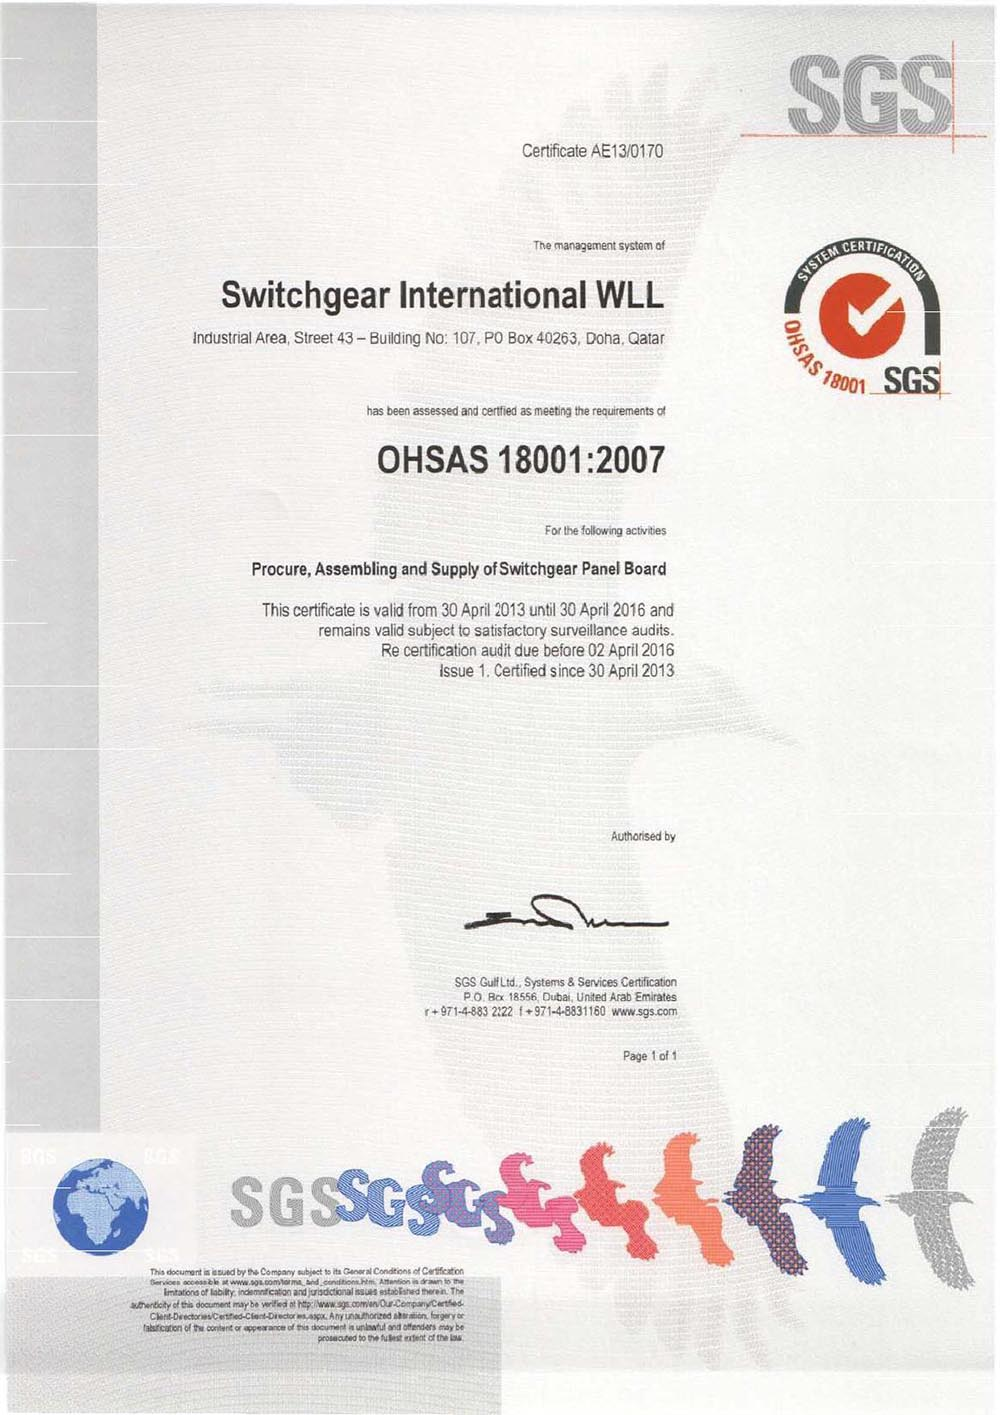 OHSAS 18001:2007 Health, Safety & Environment